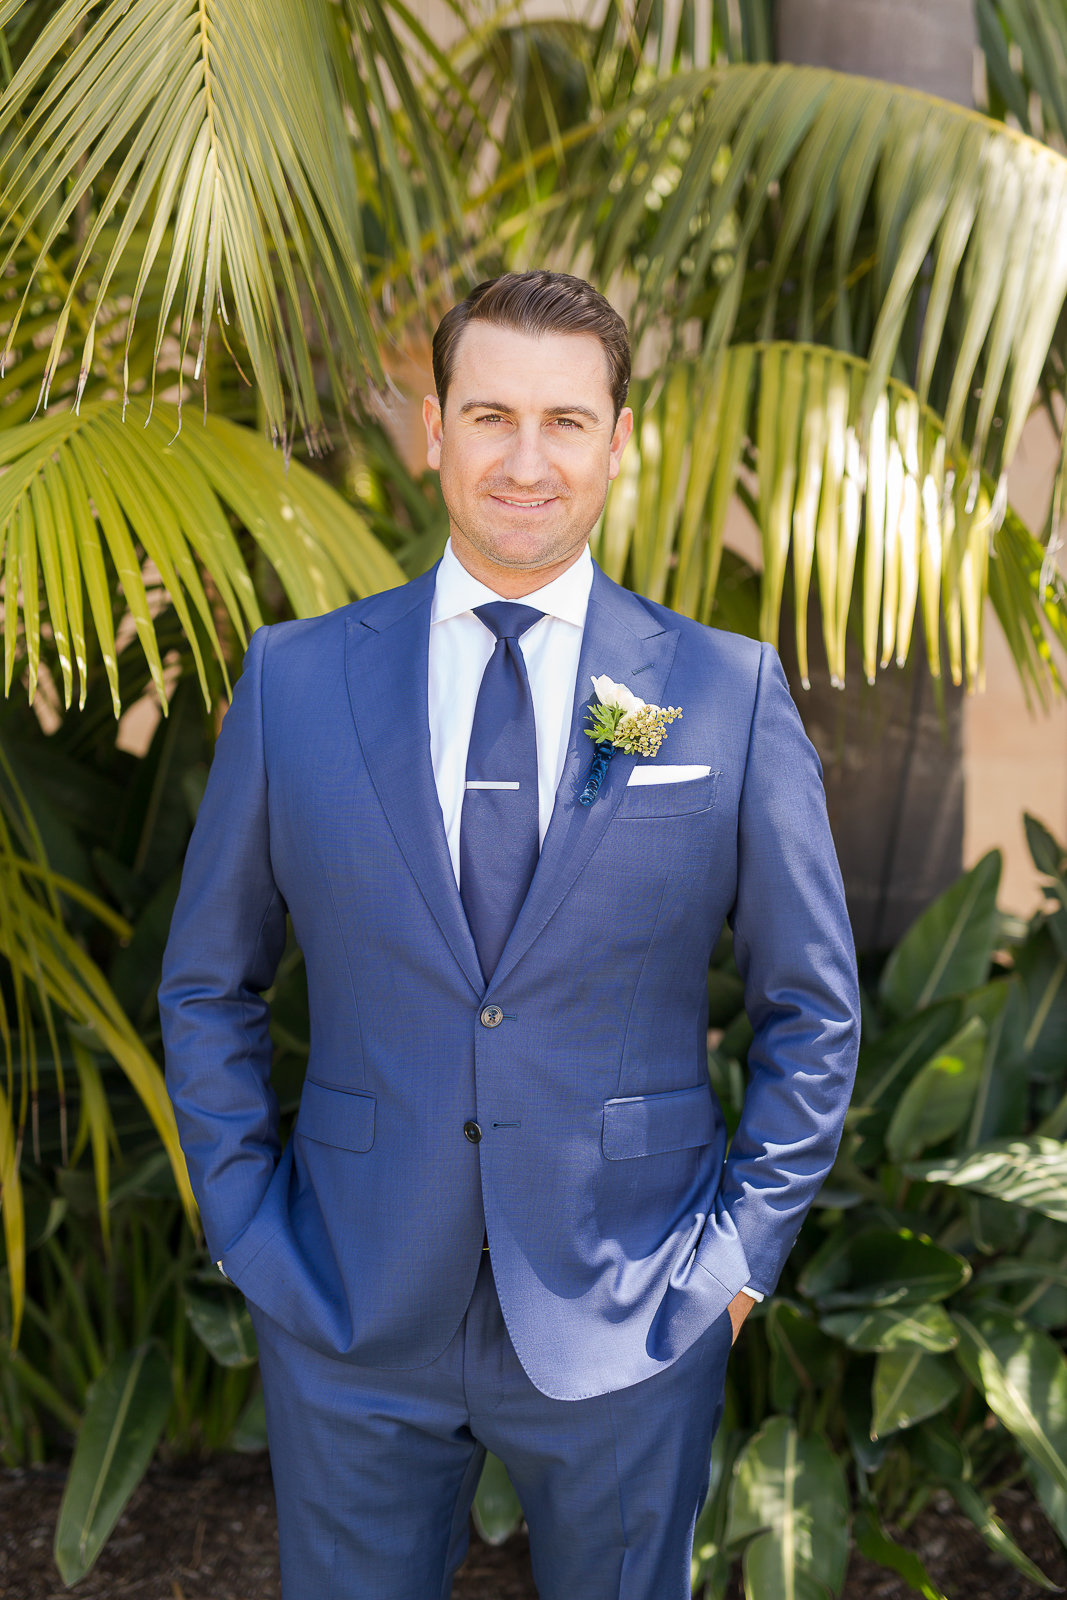 Newport Beach Caliornia Destination Wedding Theresa Bridget Photography-26